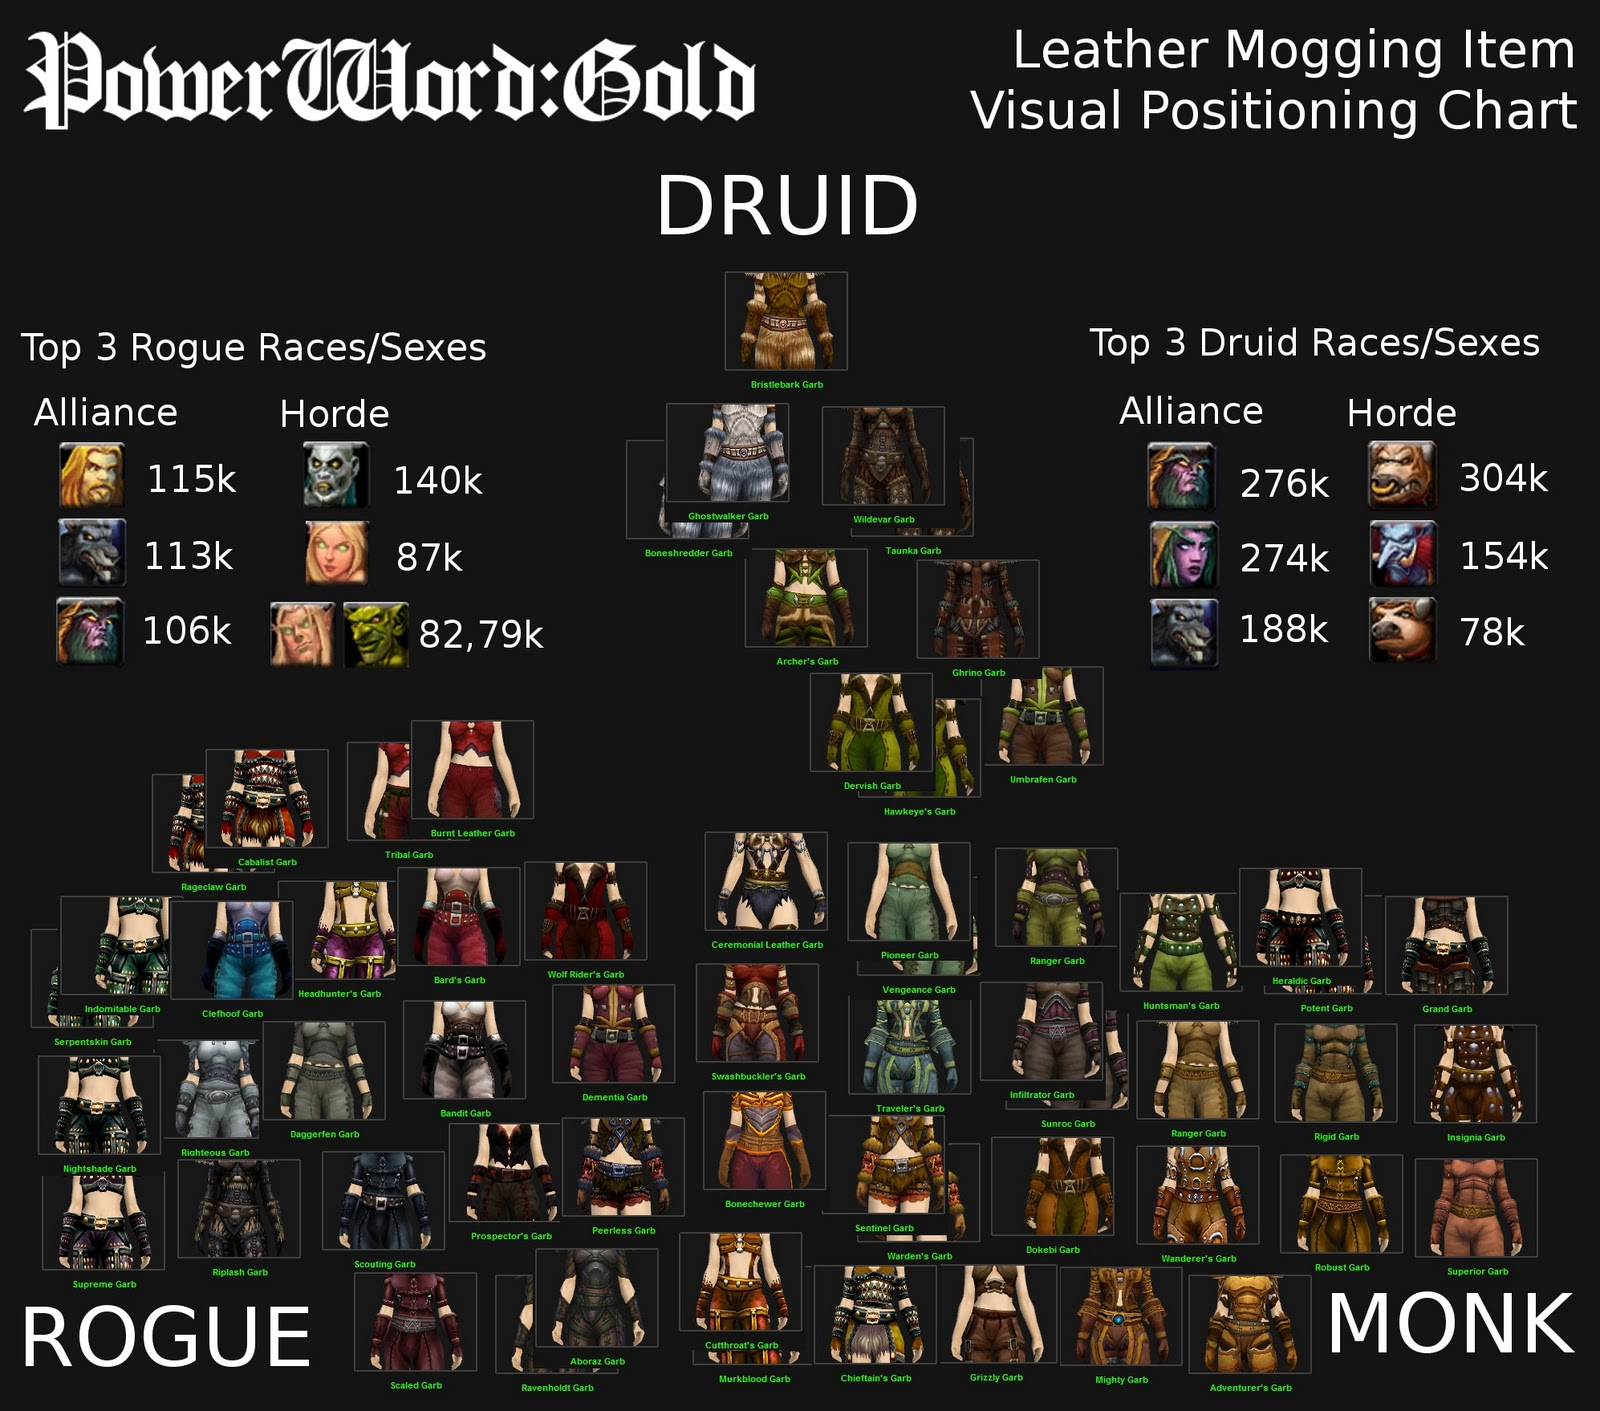 The problematic possibilities of leather mogging item sales nvjuhfo Choice Image